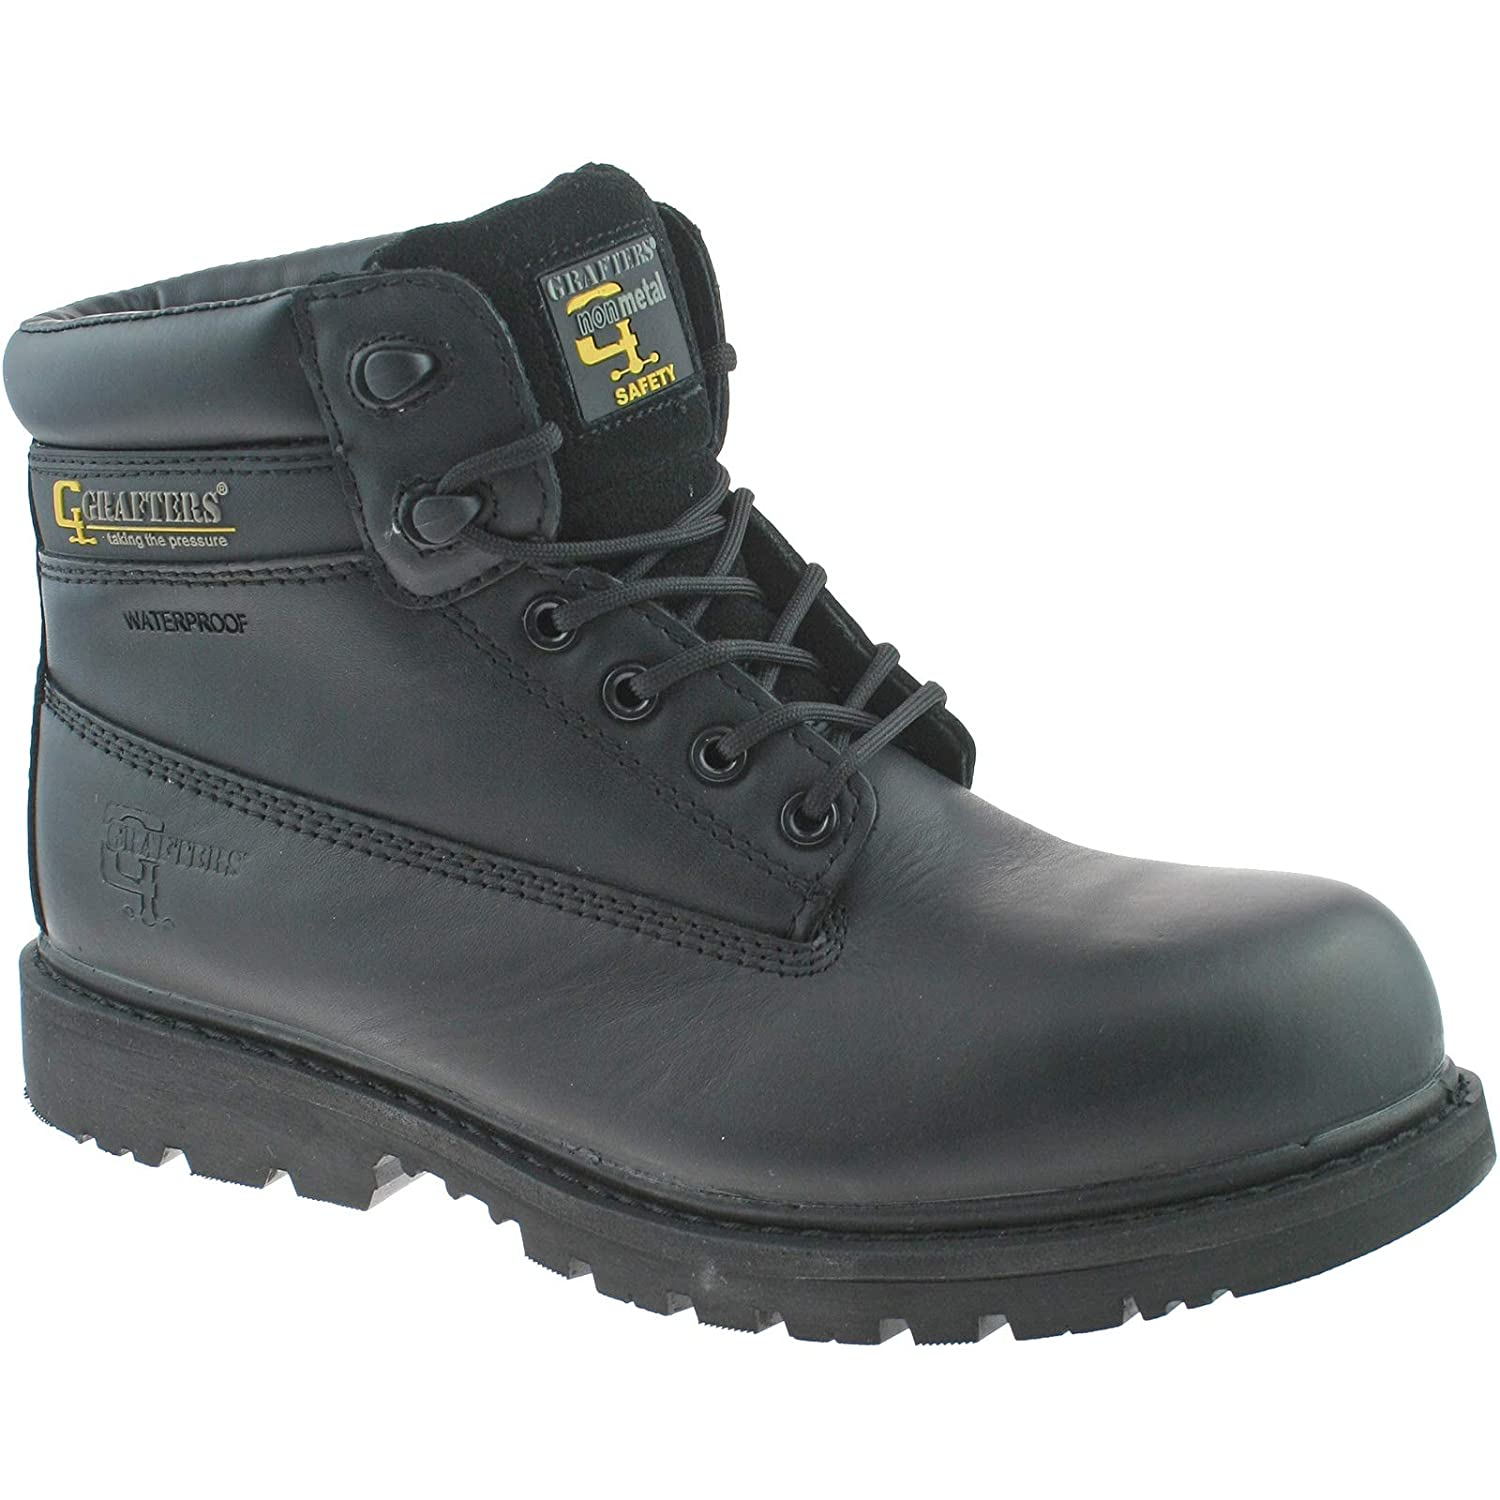 GRAFTERS NON METAL WATERPROOF SAFETY BOOTS SIZE UK 6 13